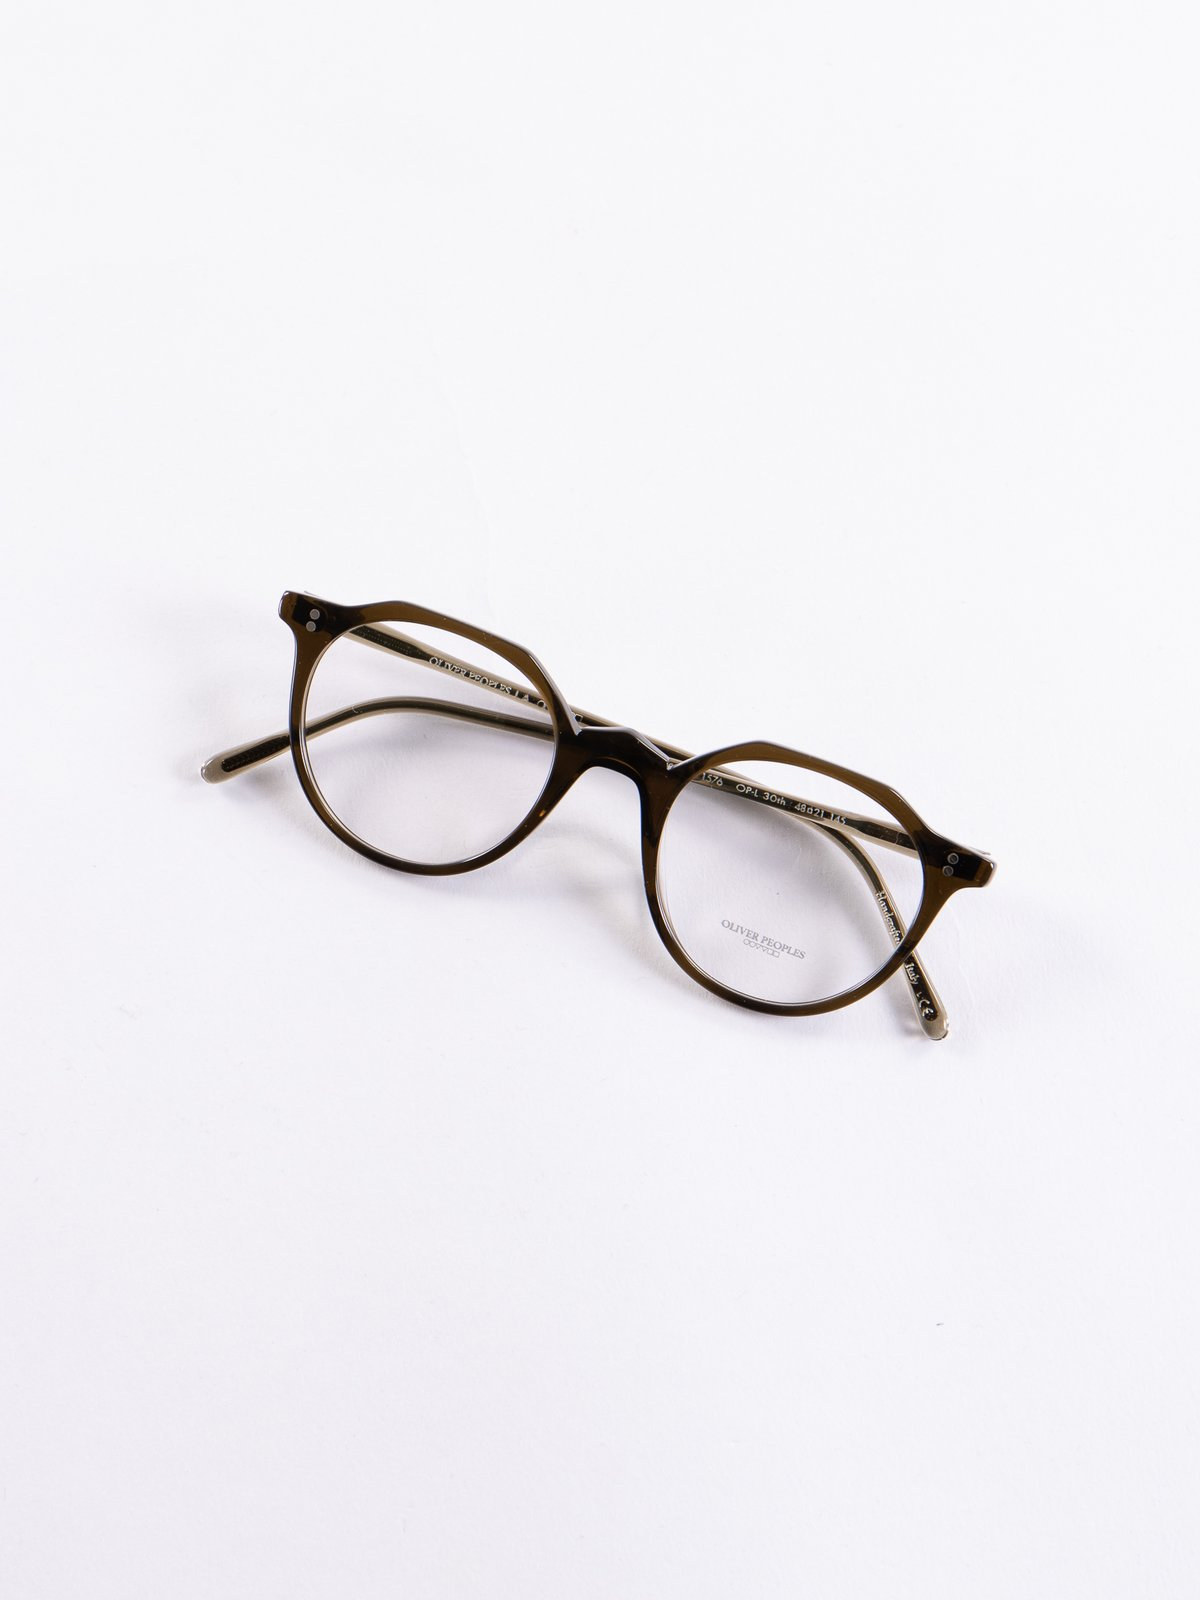 Dark Military OP–L 30th Optical Frame - Image 1